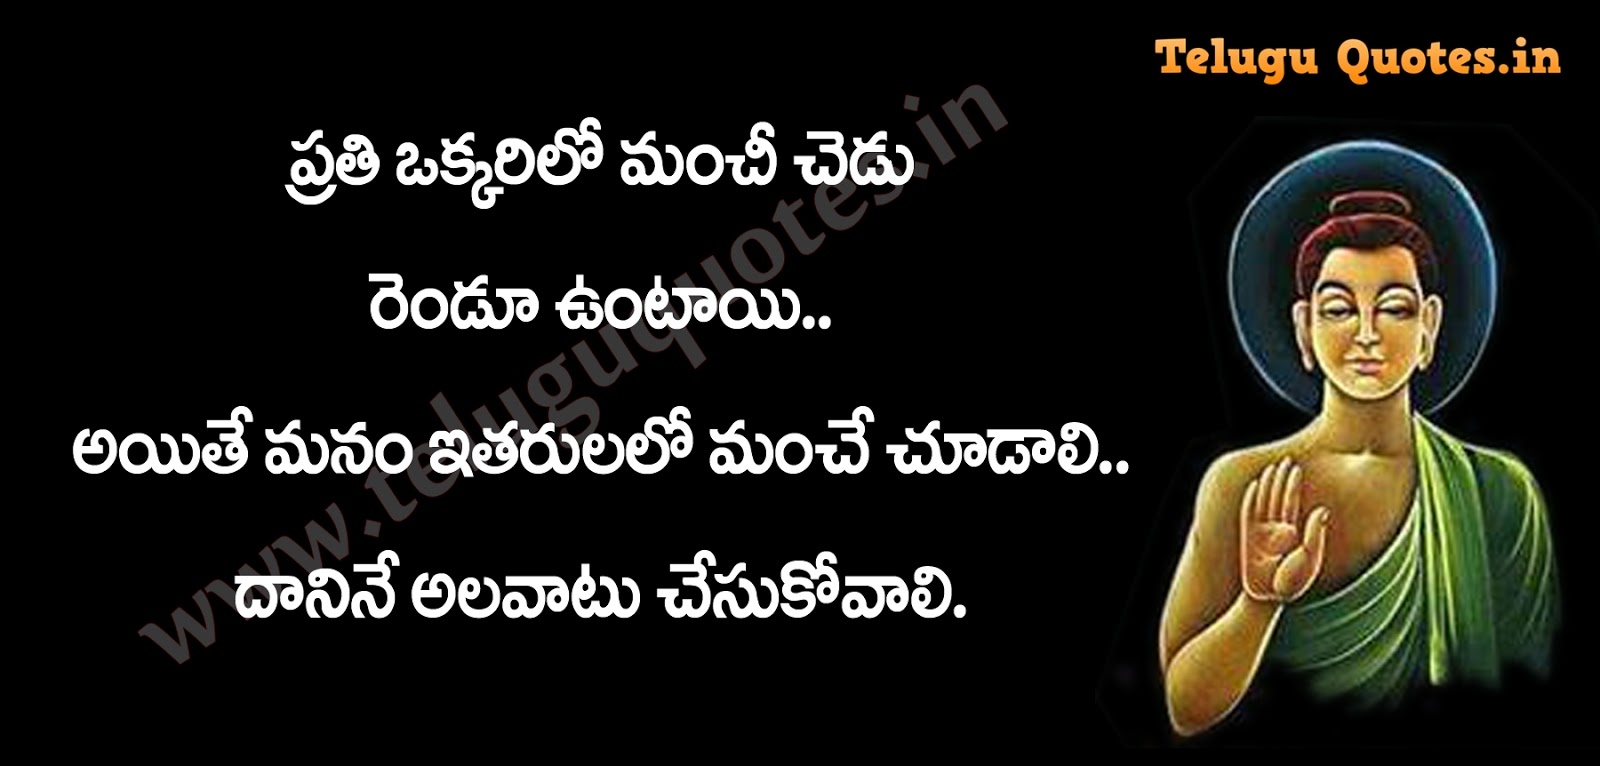 Gautama Buddha Quotes Gautama Buddha Quotes  Telugu Quotes.in